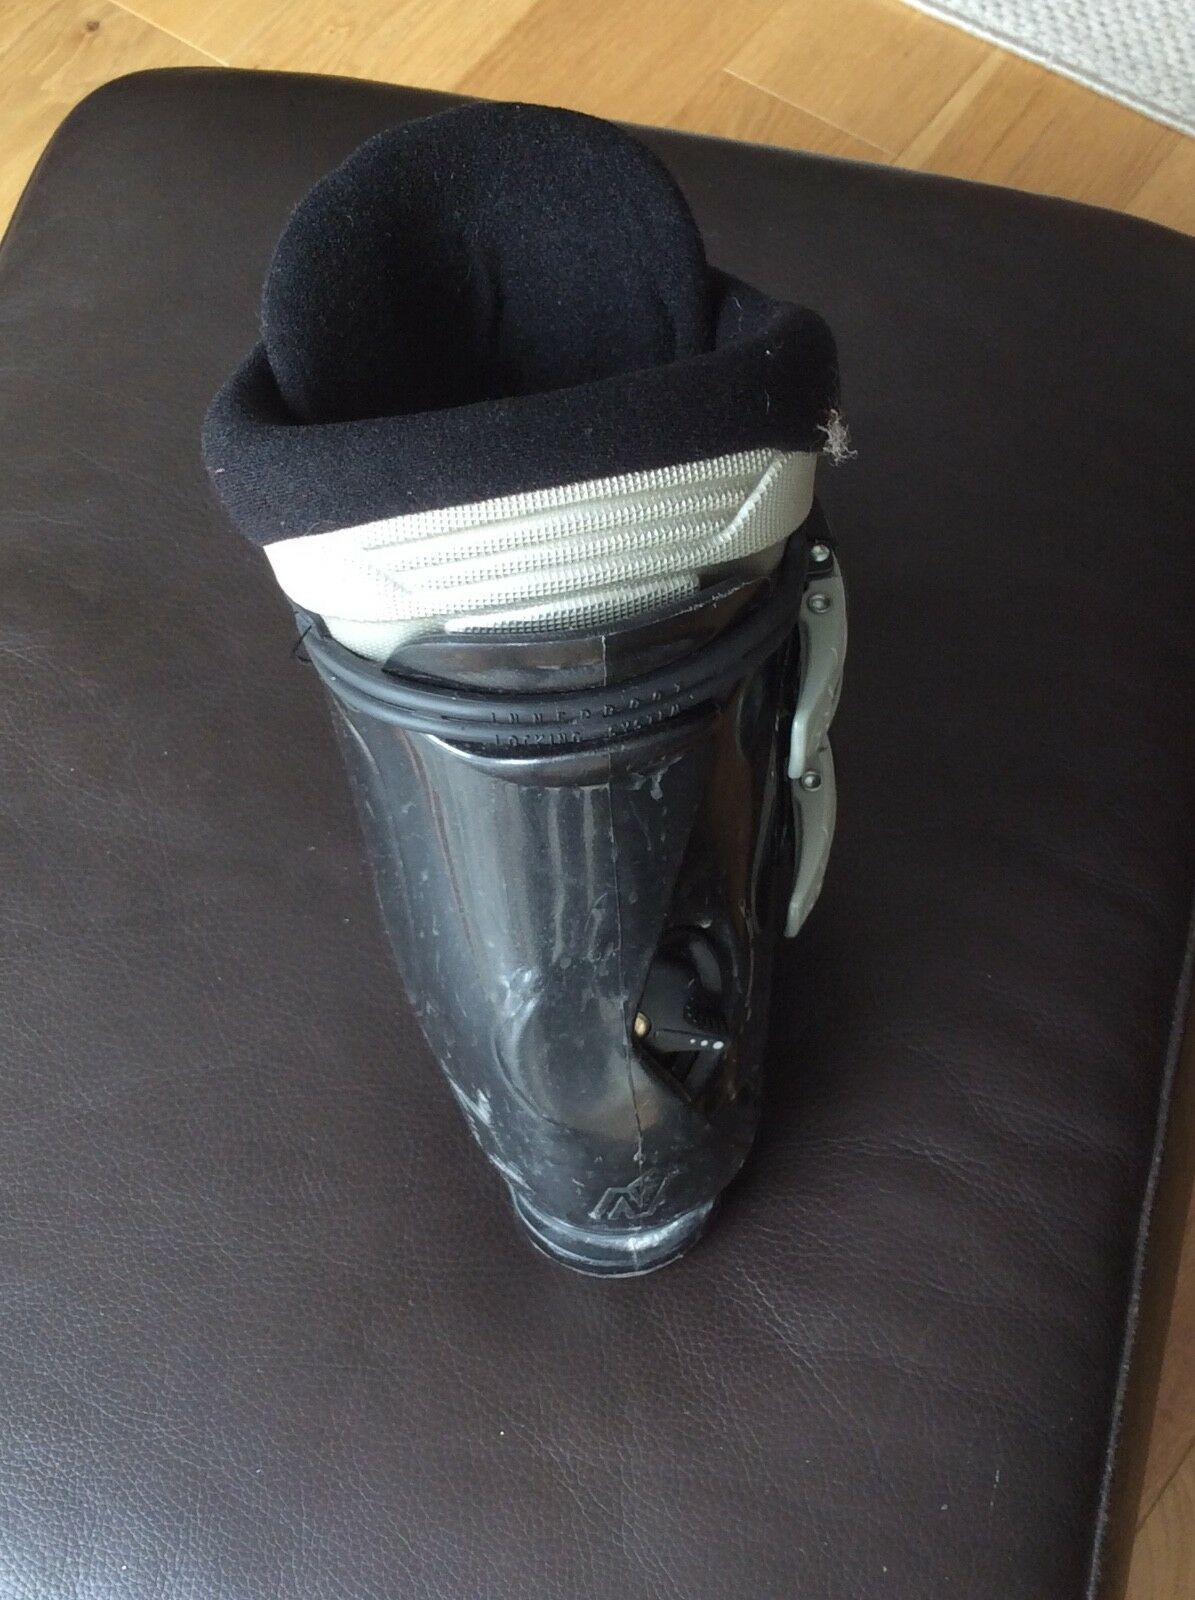 Nordica gents ski boots size, 8 good condition, rarely worn